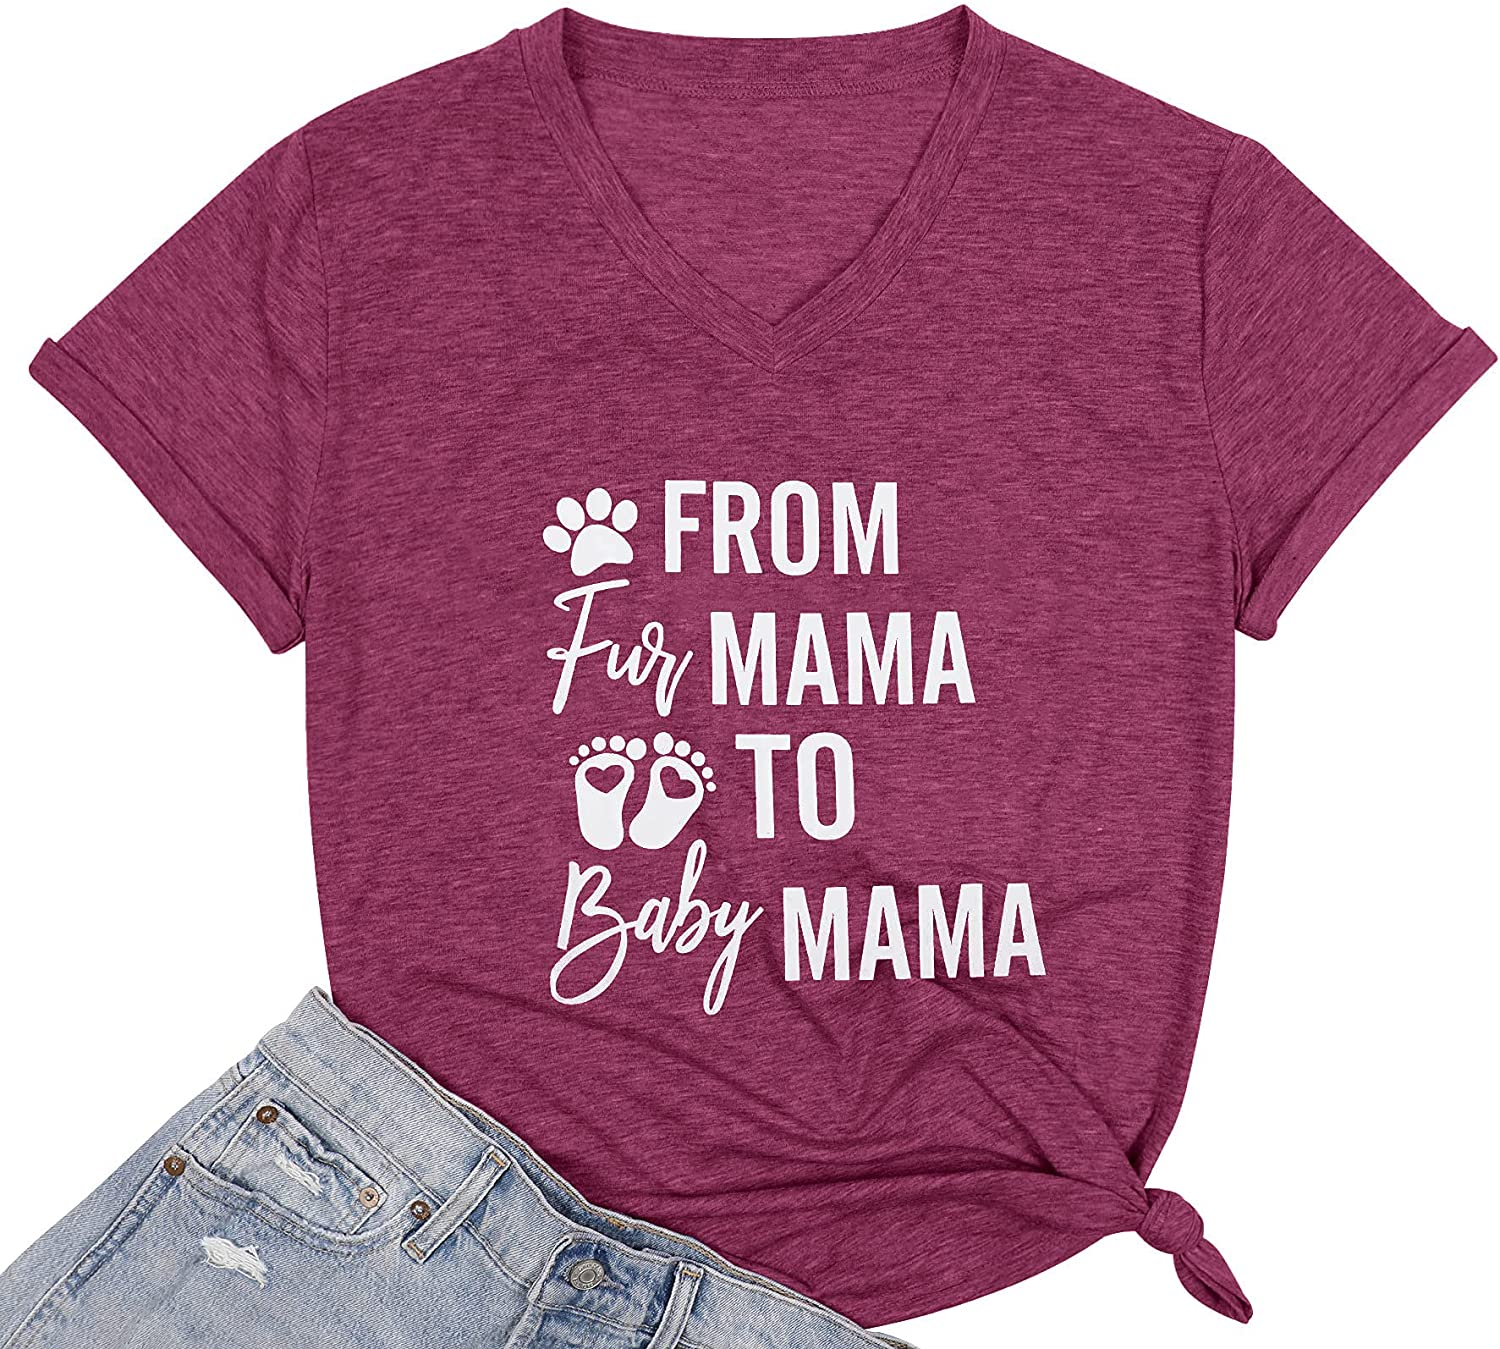 Pregnancy Announcement T Shirts Cute from Fur Mama to Baby Mama Tee Shirt Funny Graphic Print Novelty Tee Top